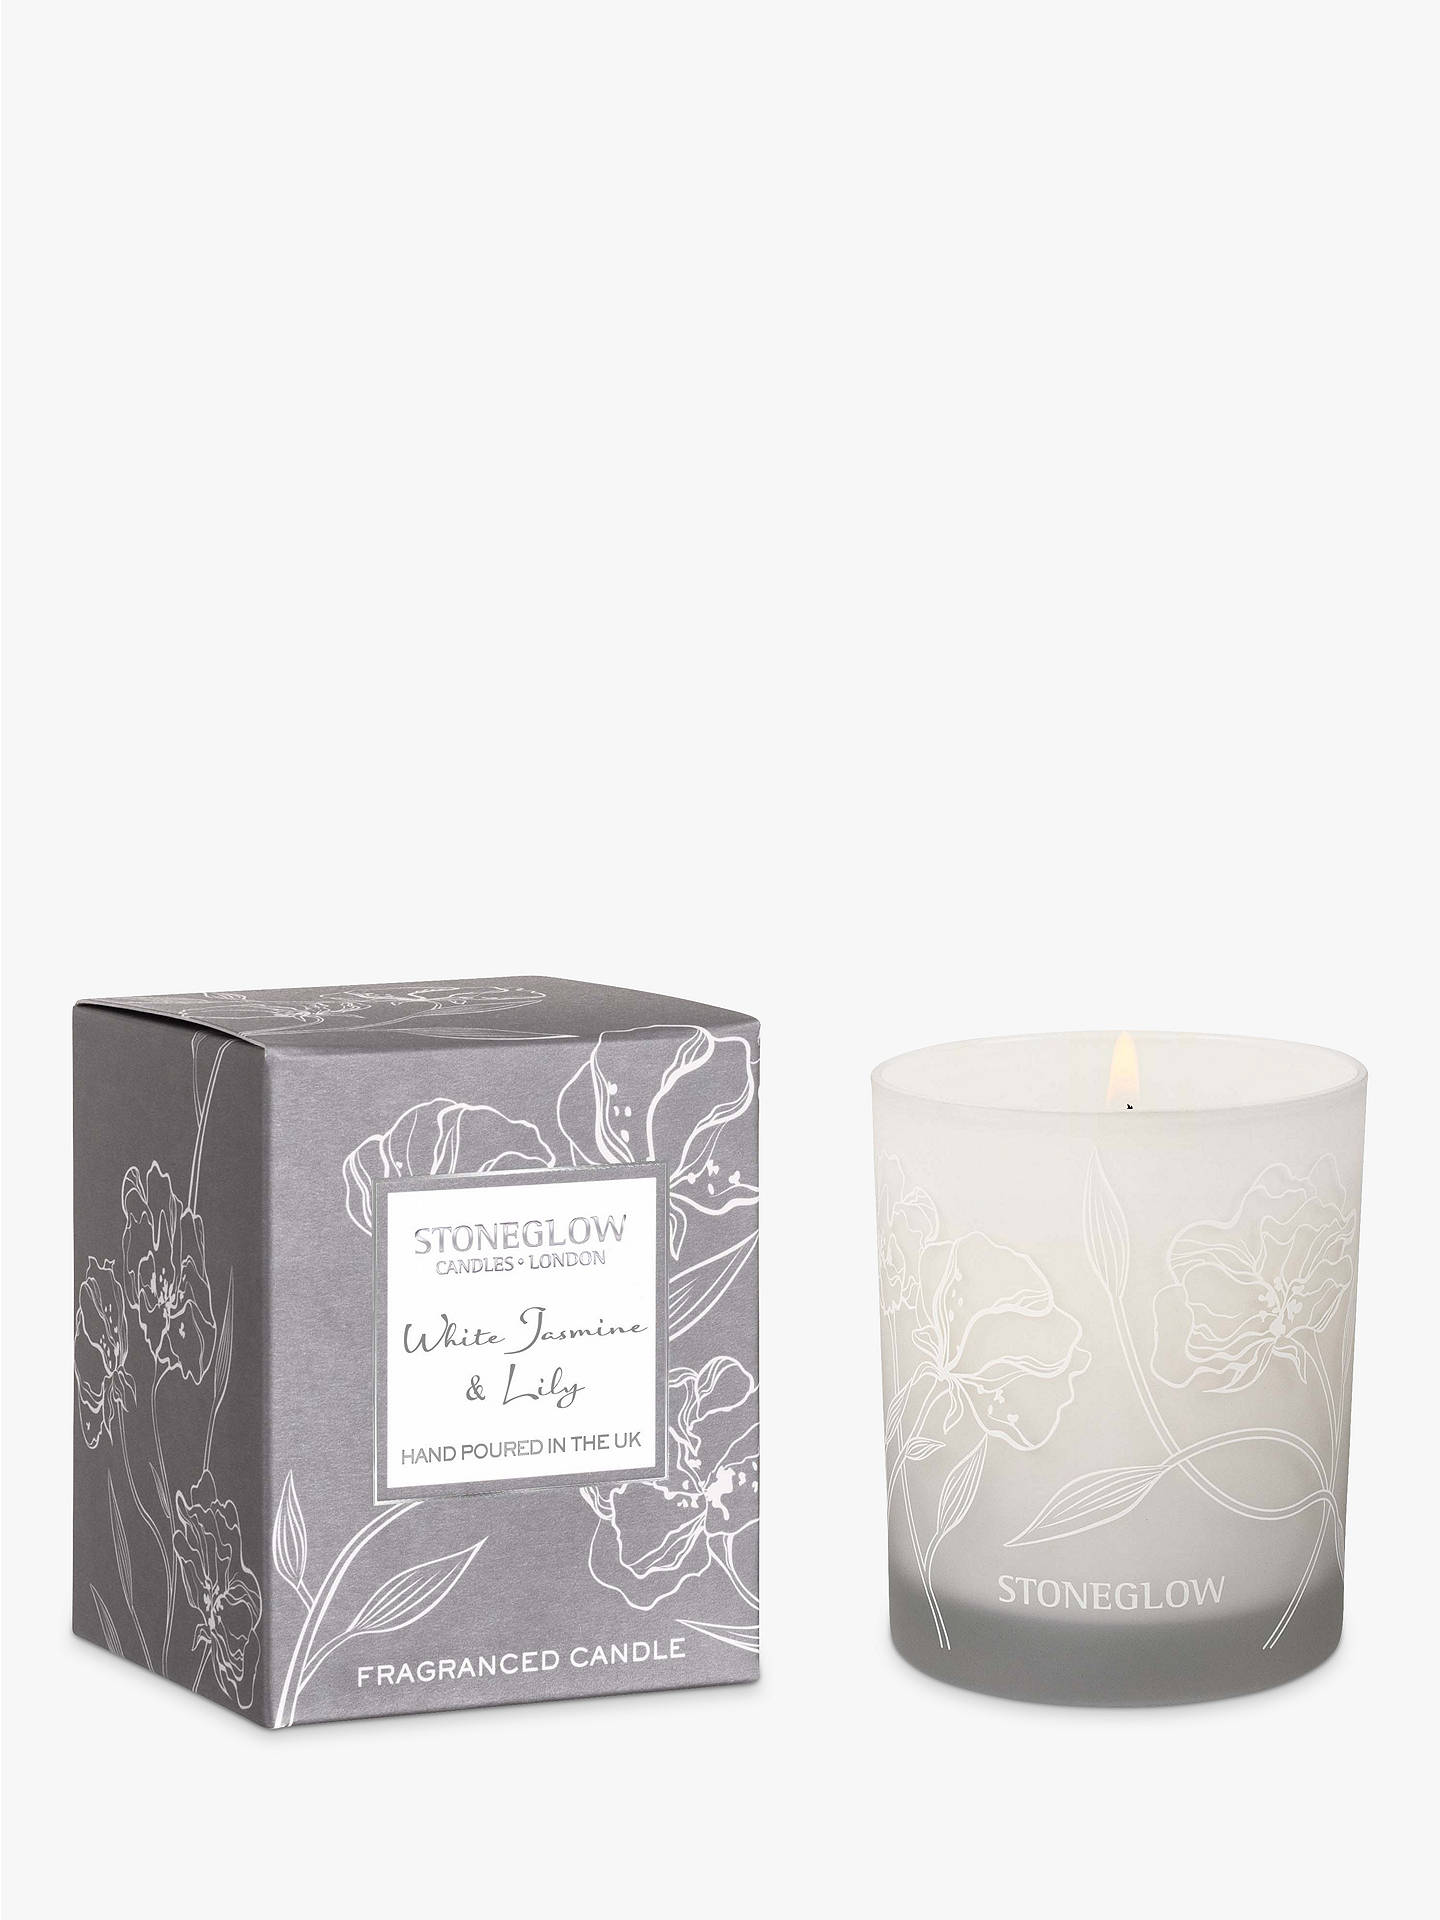 33ed64dd5e Buy Stoneglow Day Flower White Jasmine   Lily Scented Candle